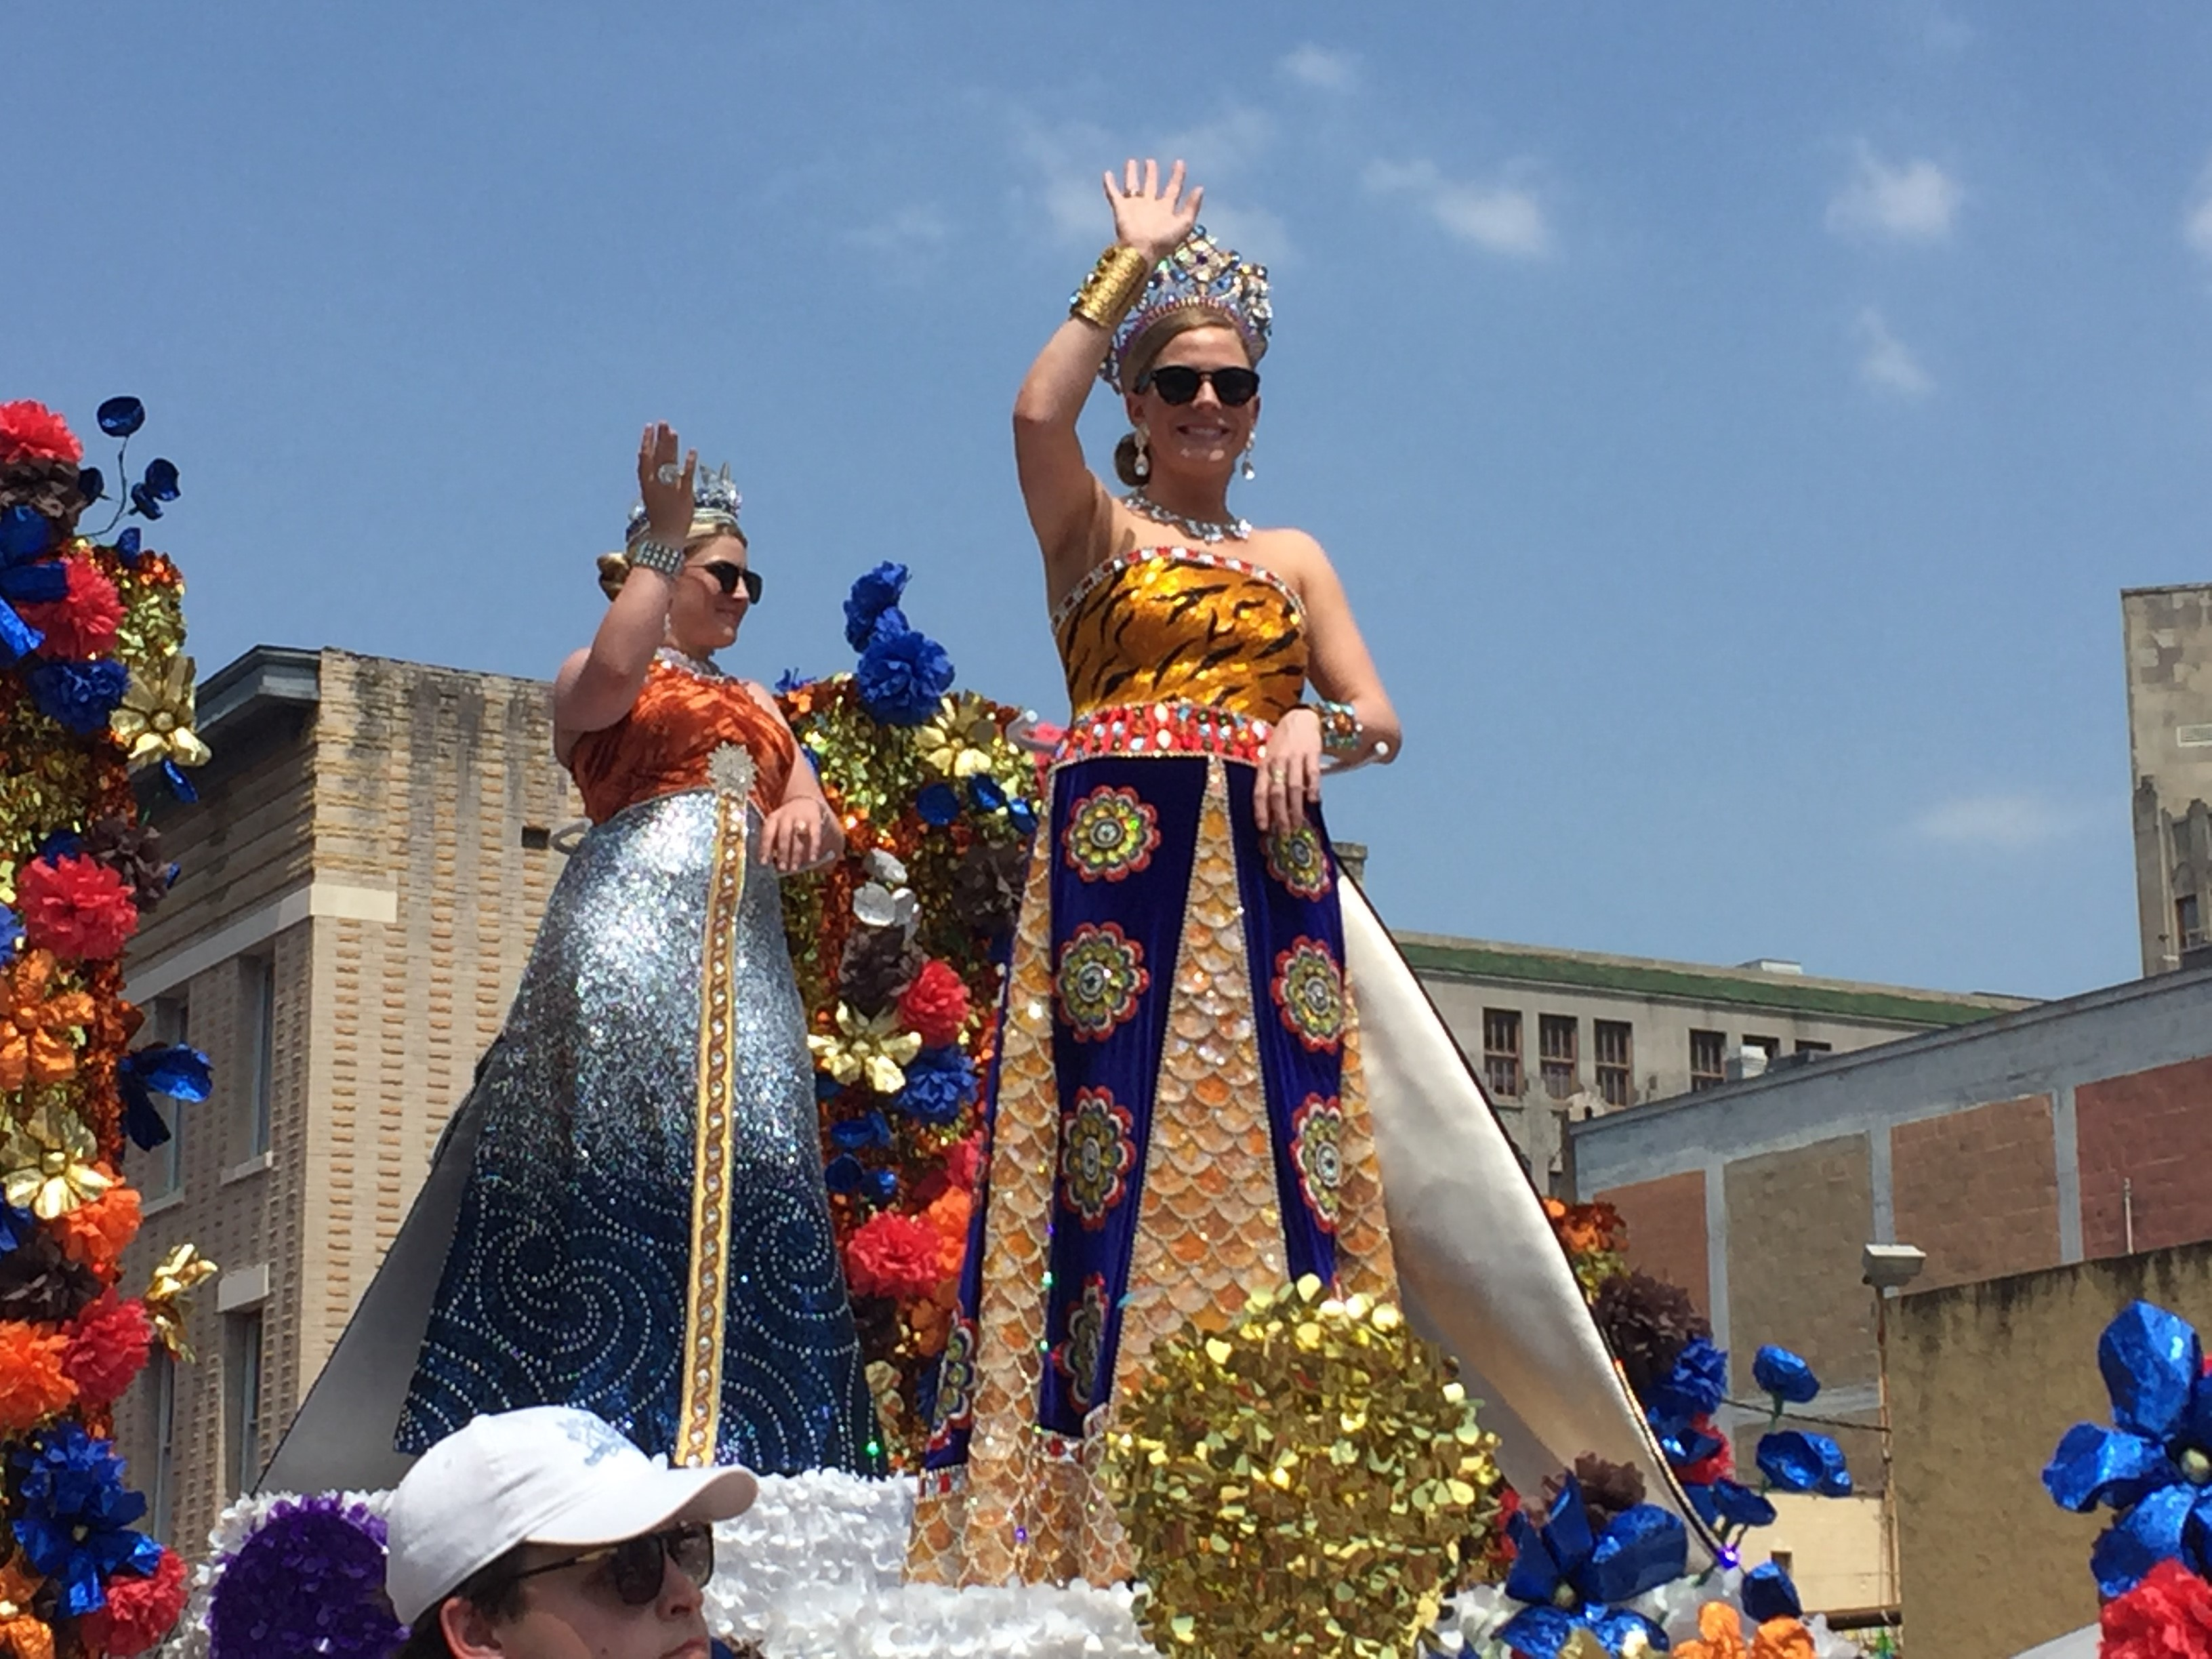 Thousands Brave The Heat For Battle Of Flowers Parade